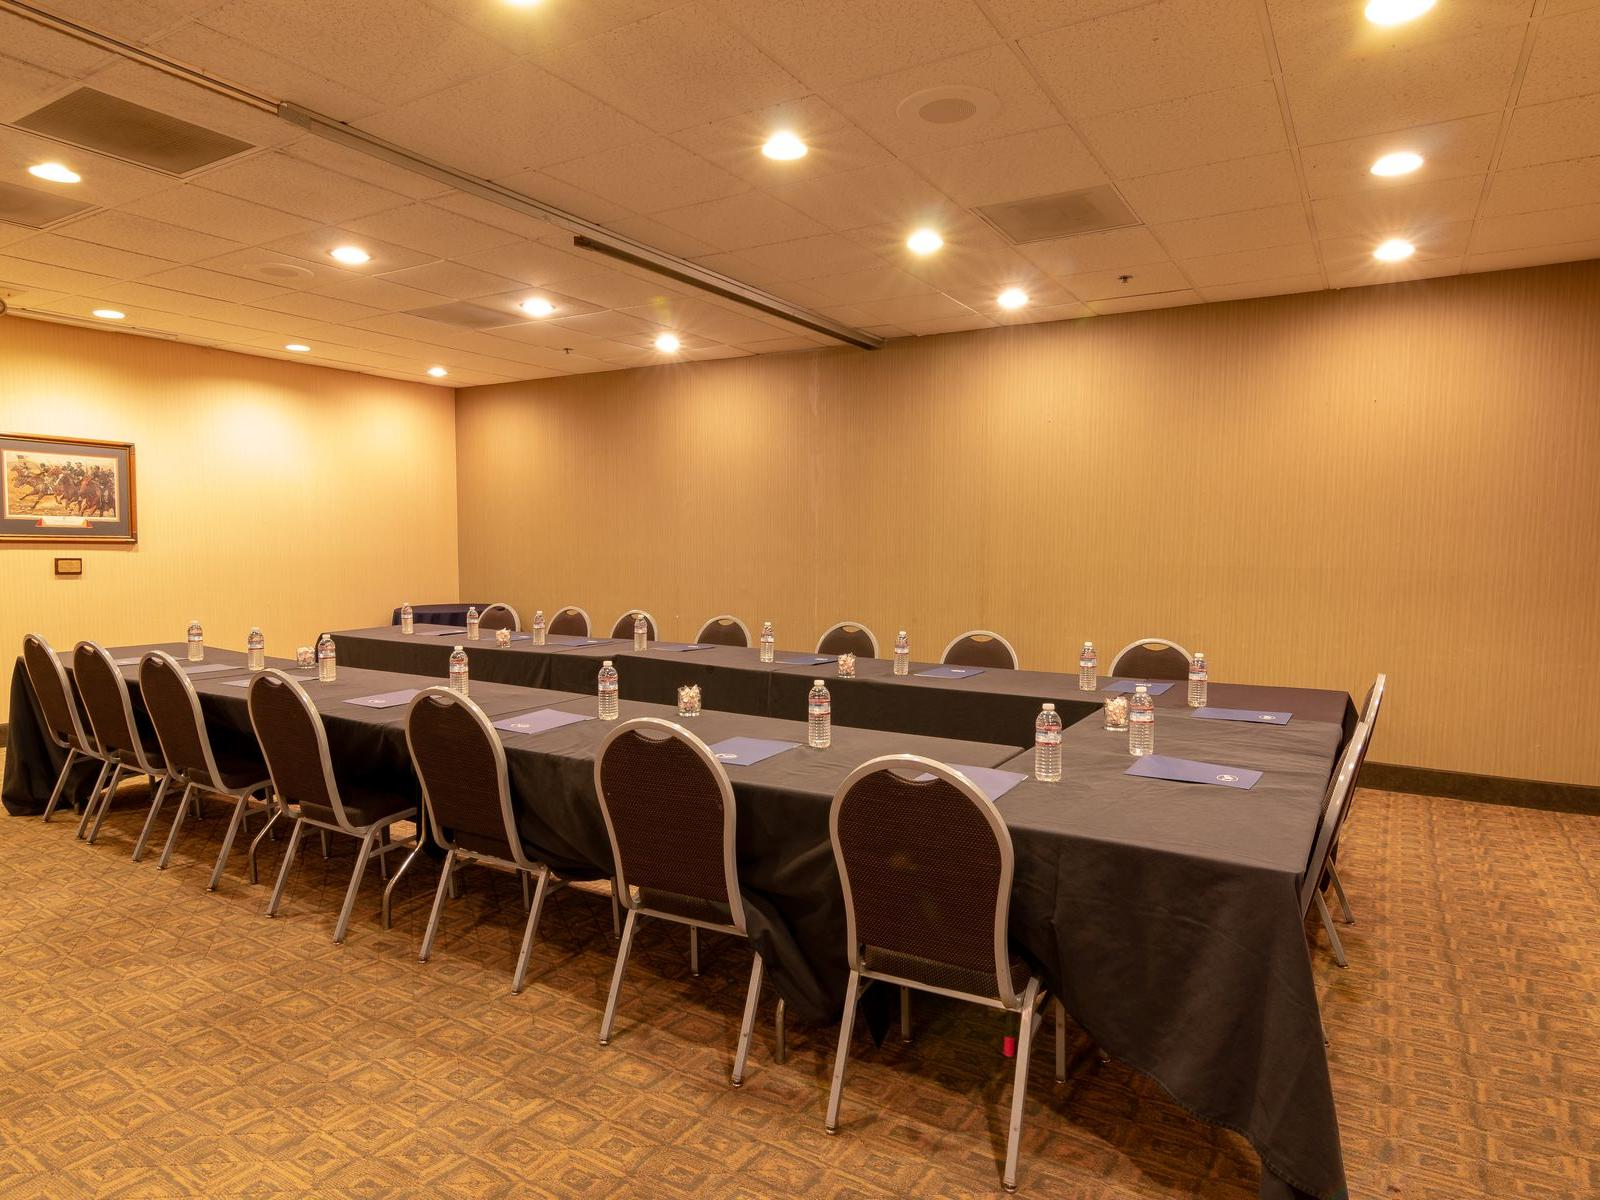 Conference room with U-shaped table